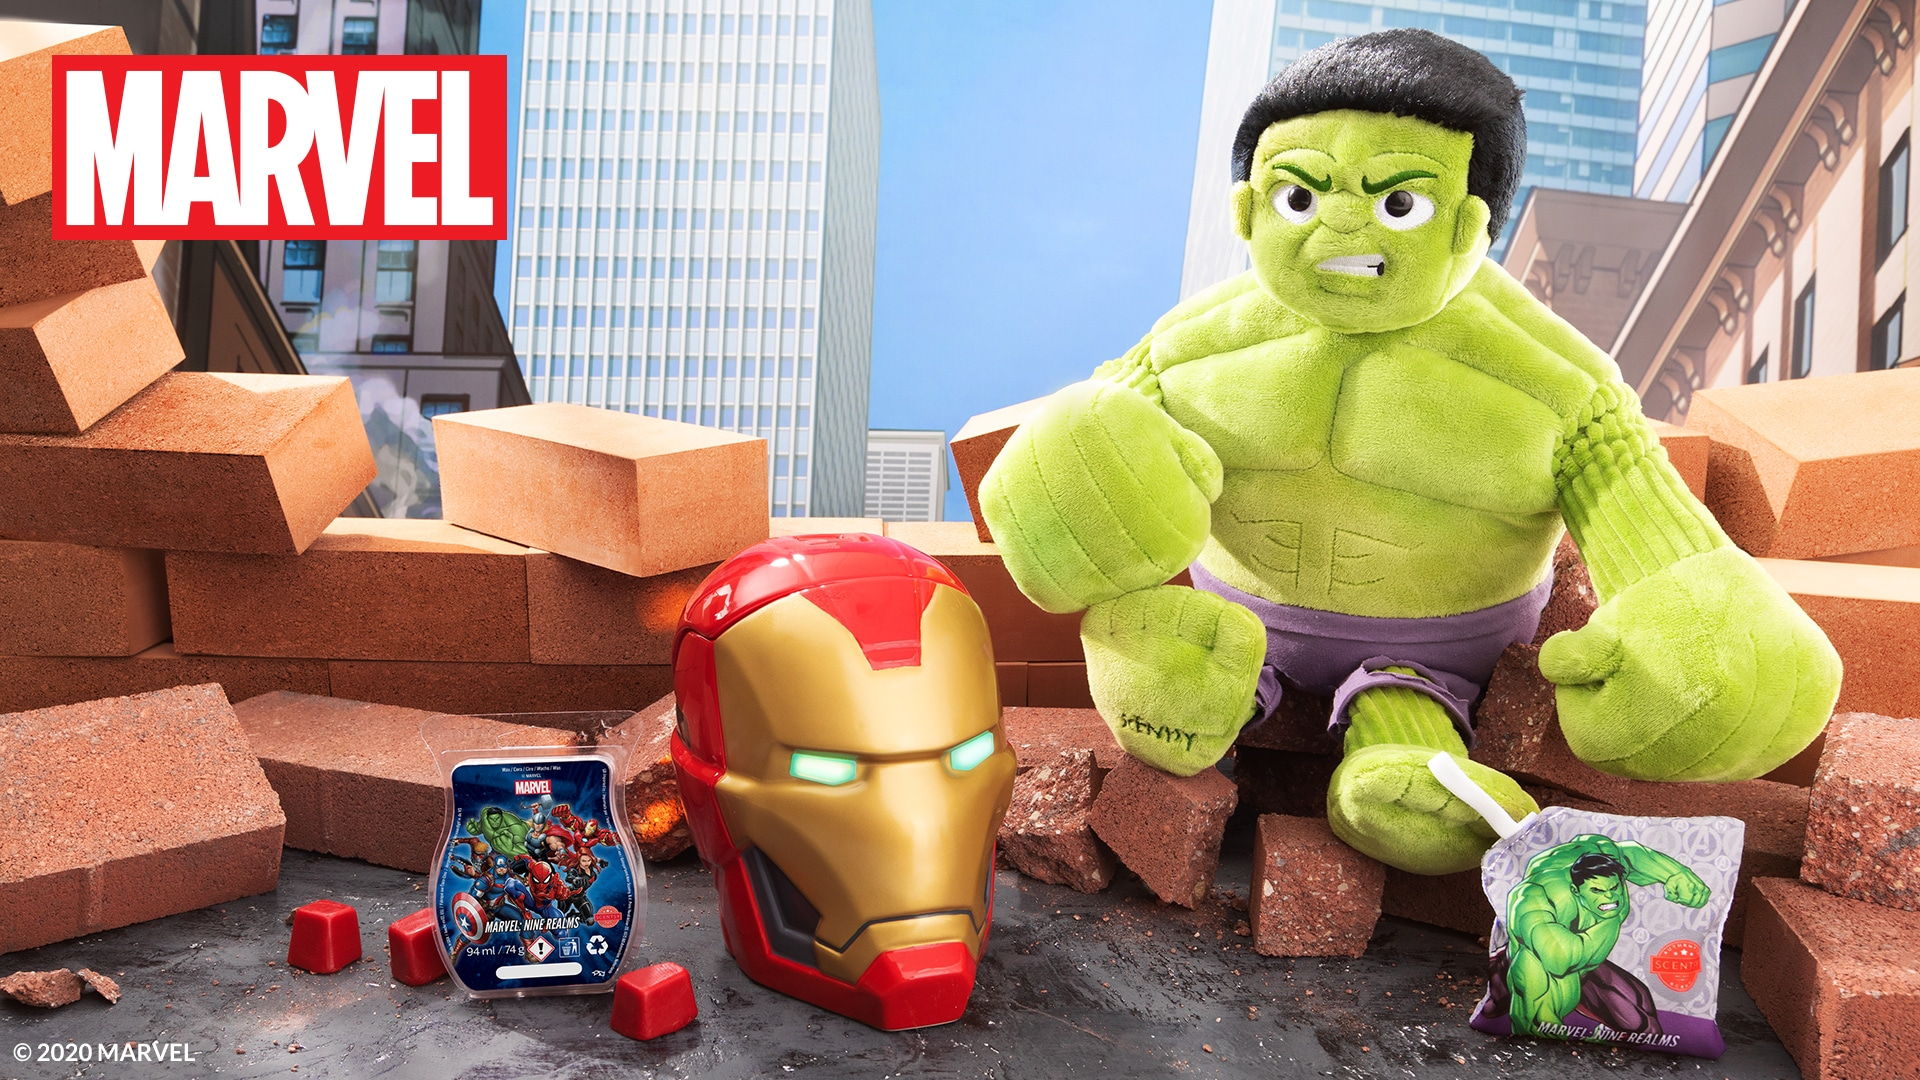 Hulk and Iron Man Scentsy UK Products